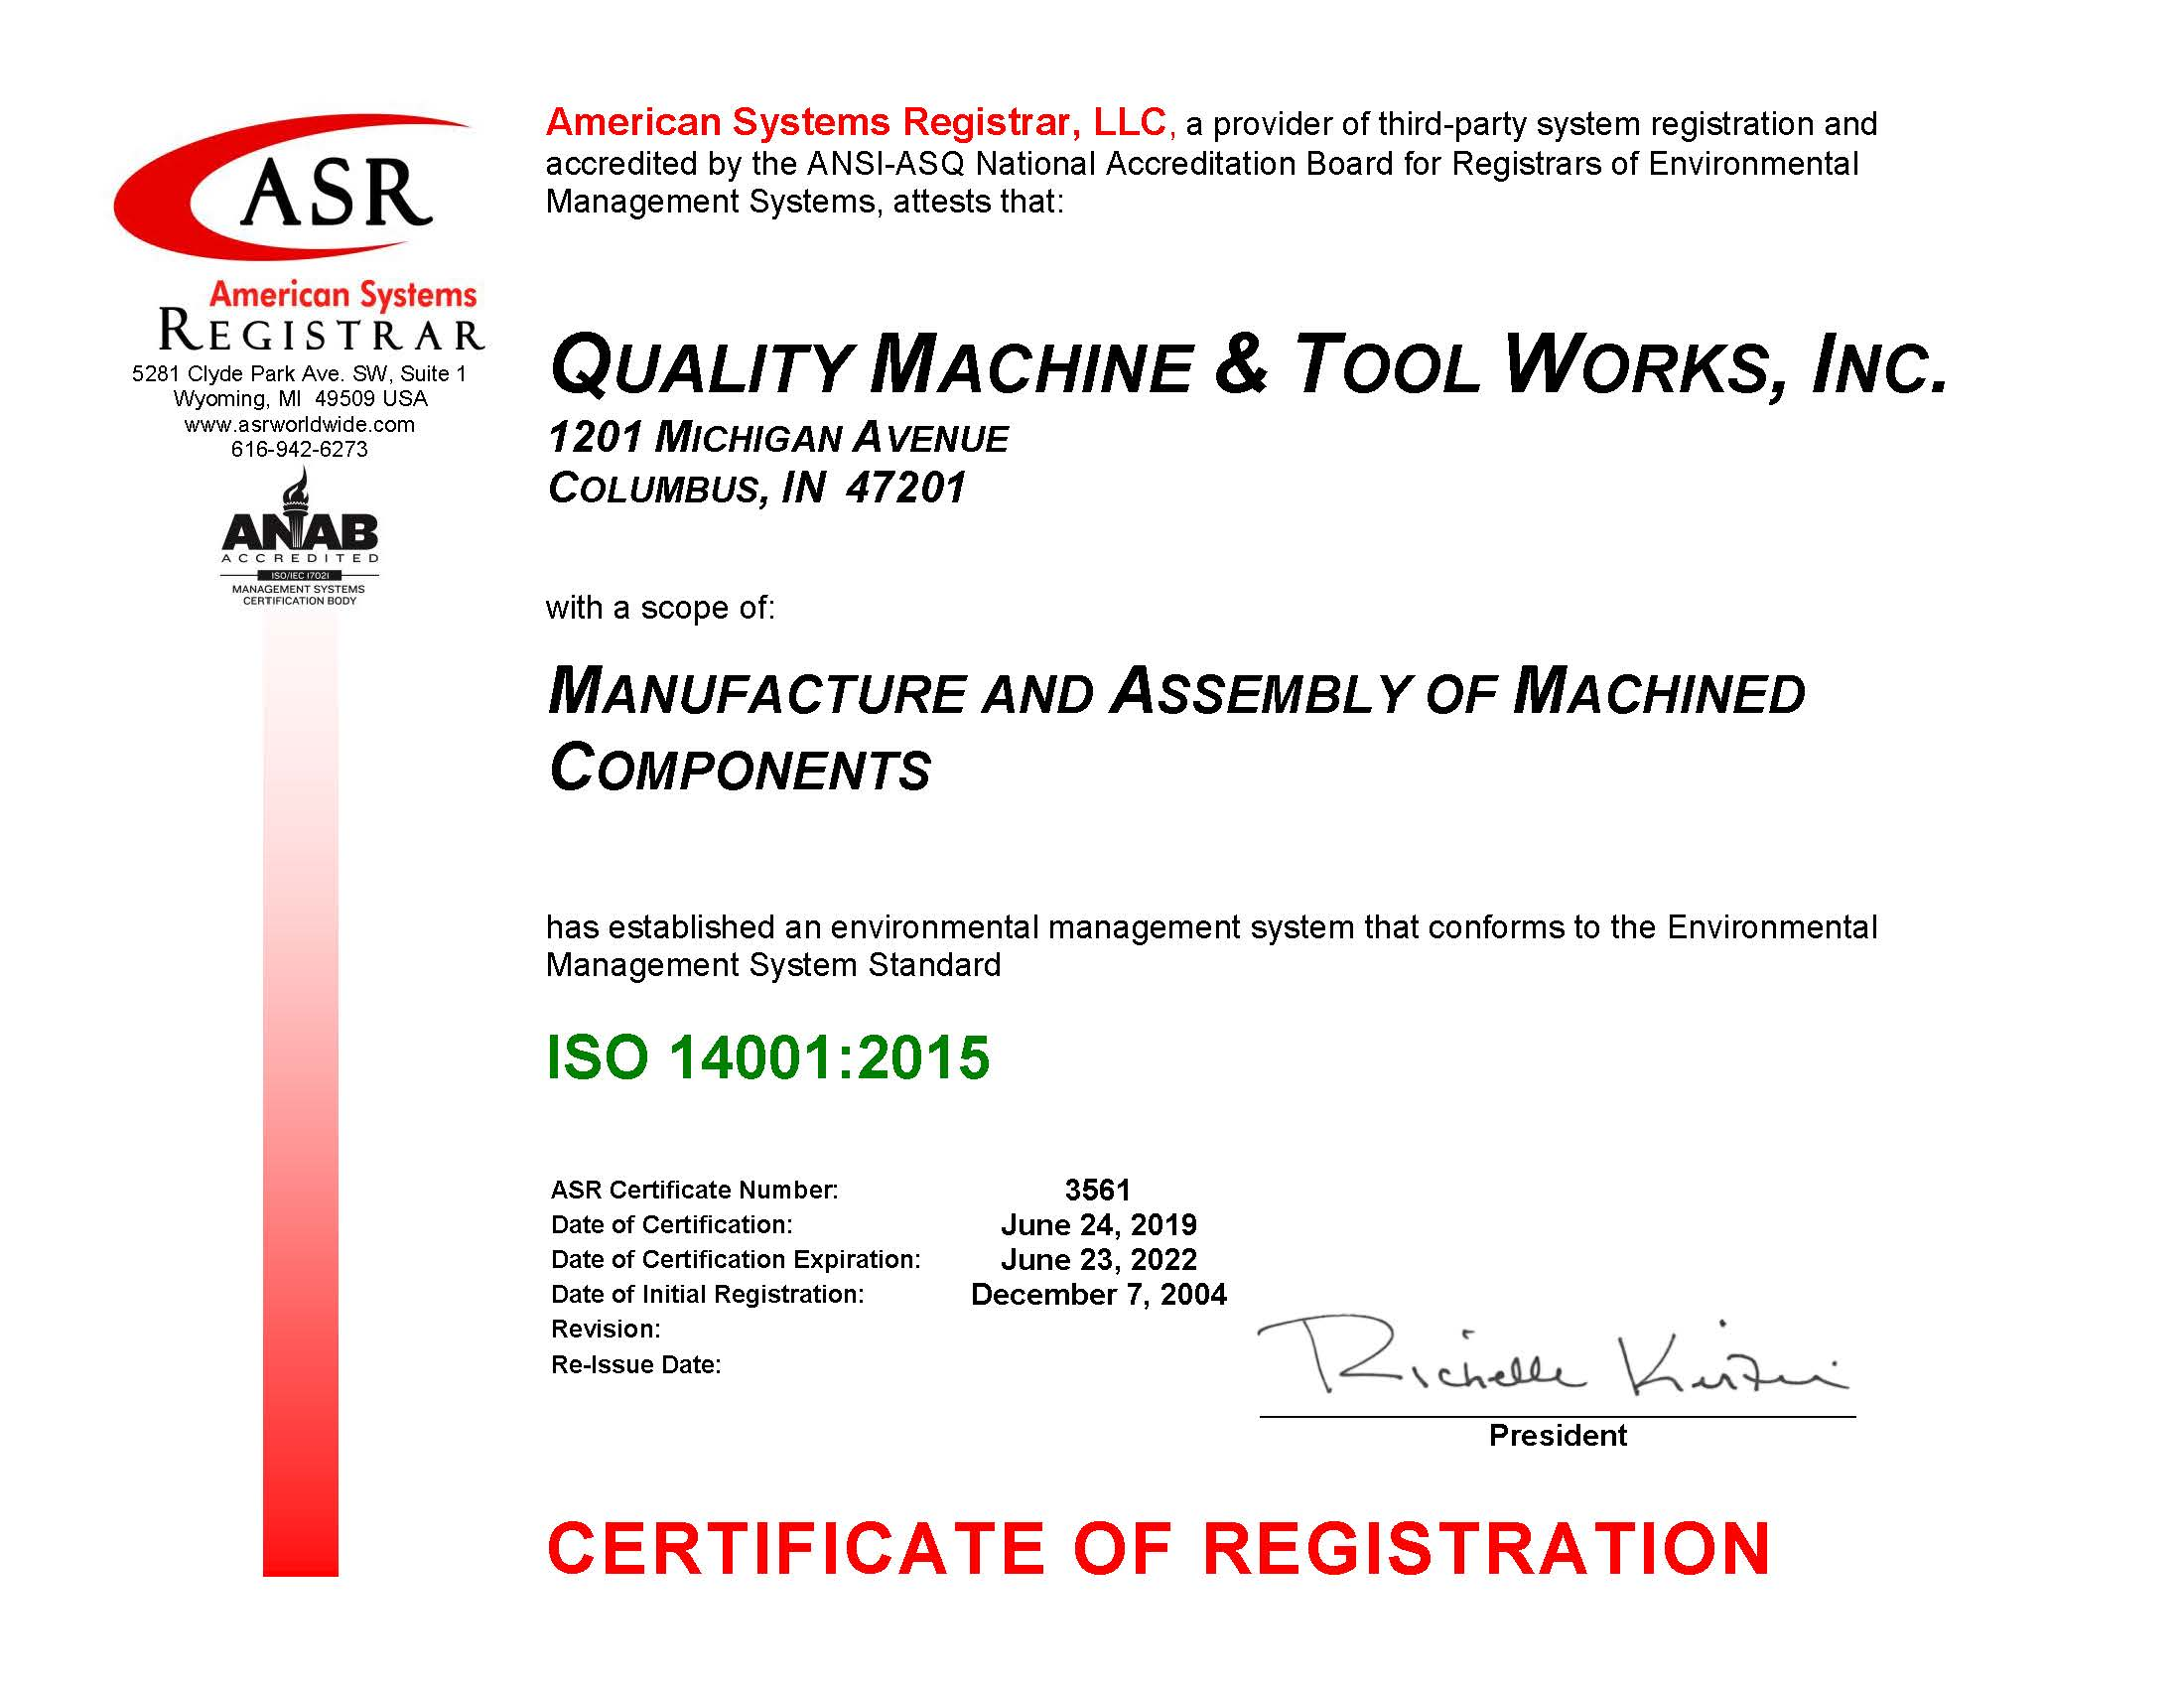 ISO-14001-2015 Certified